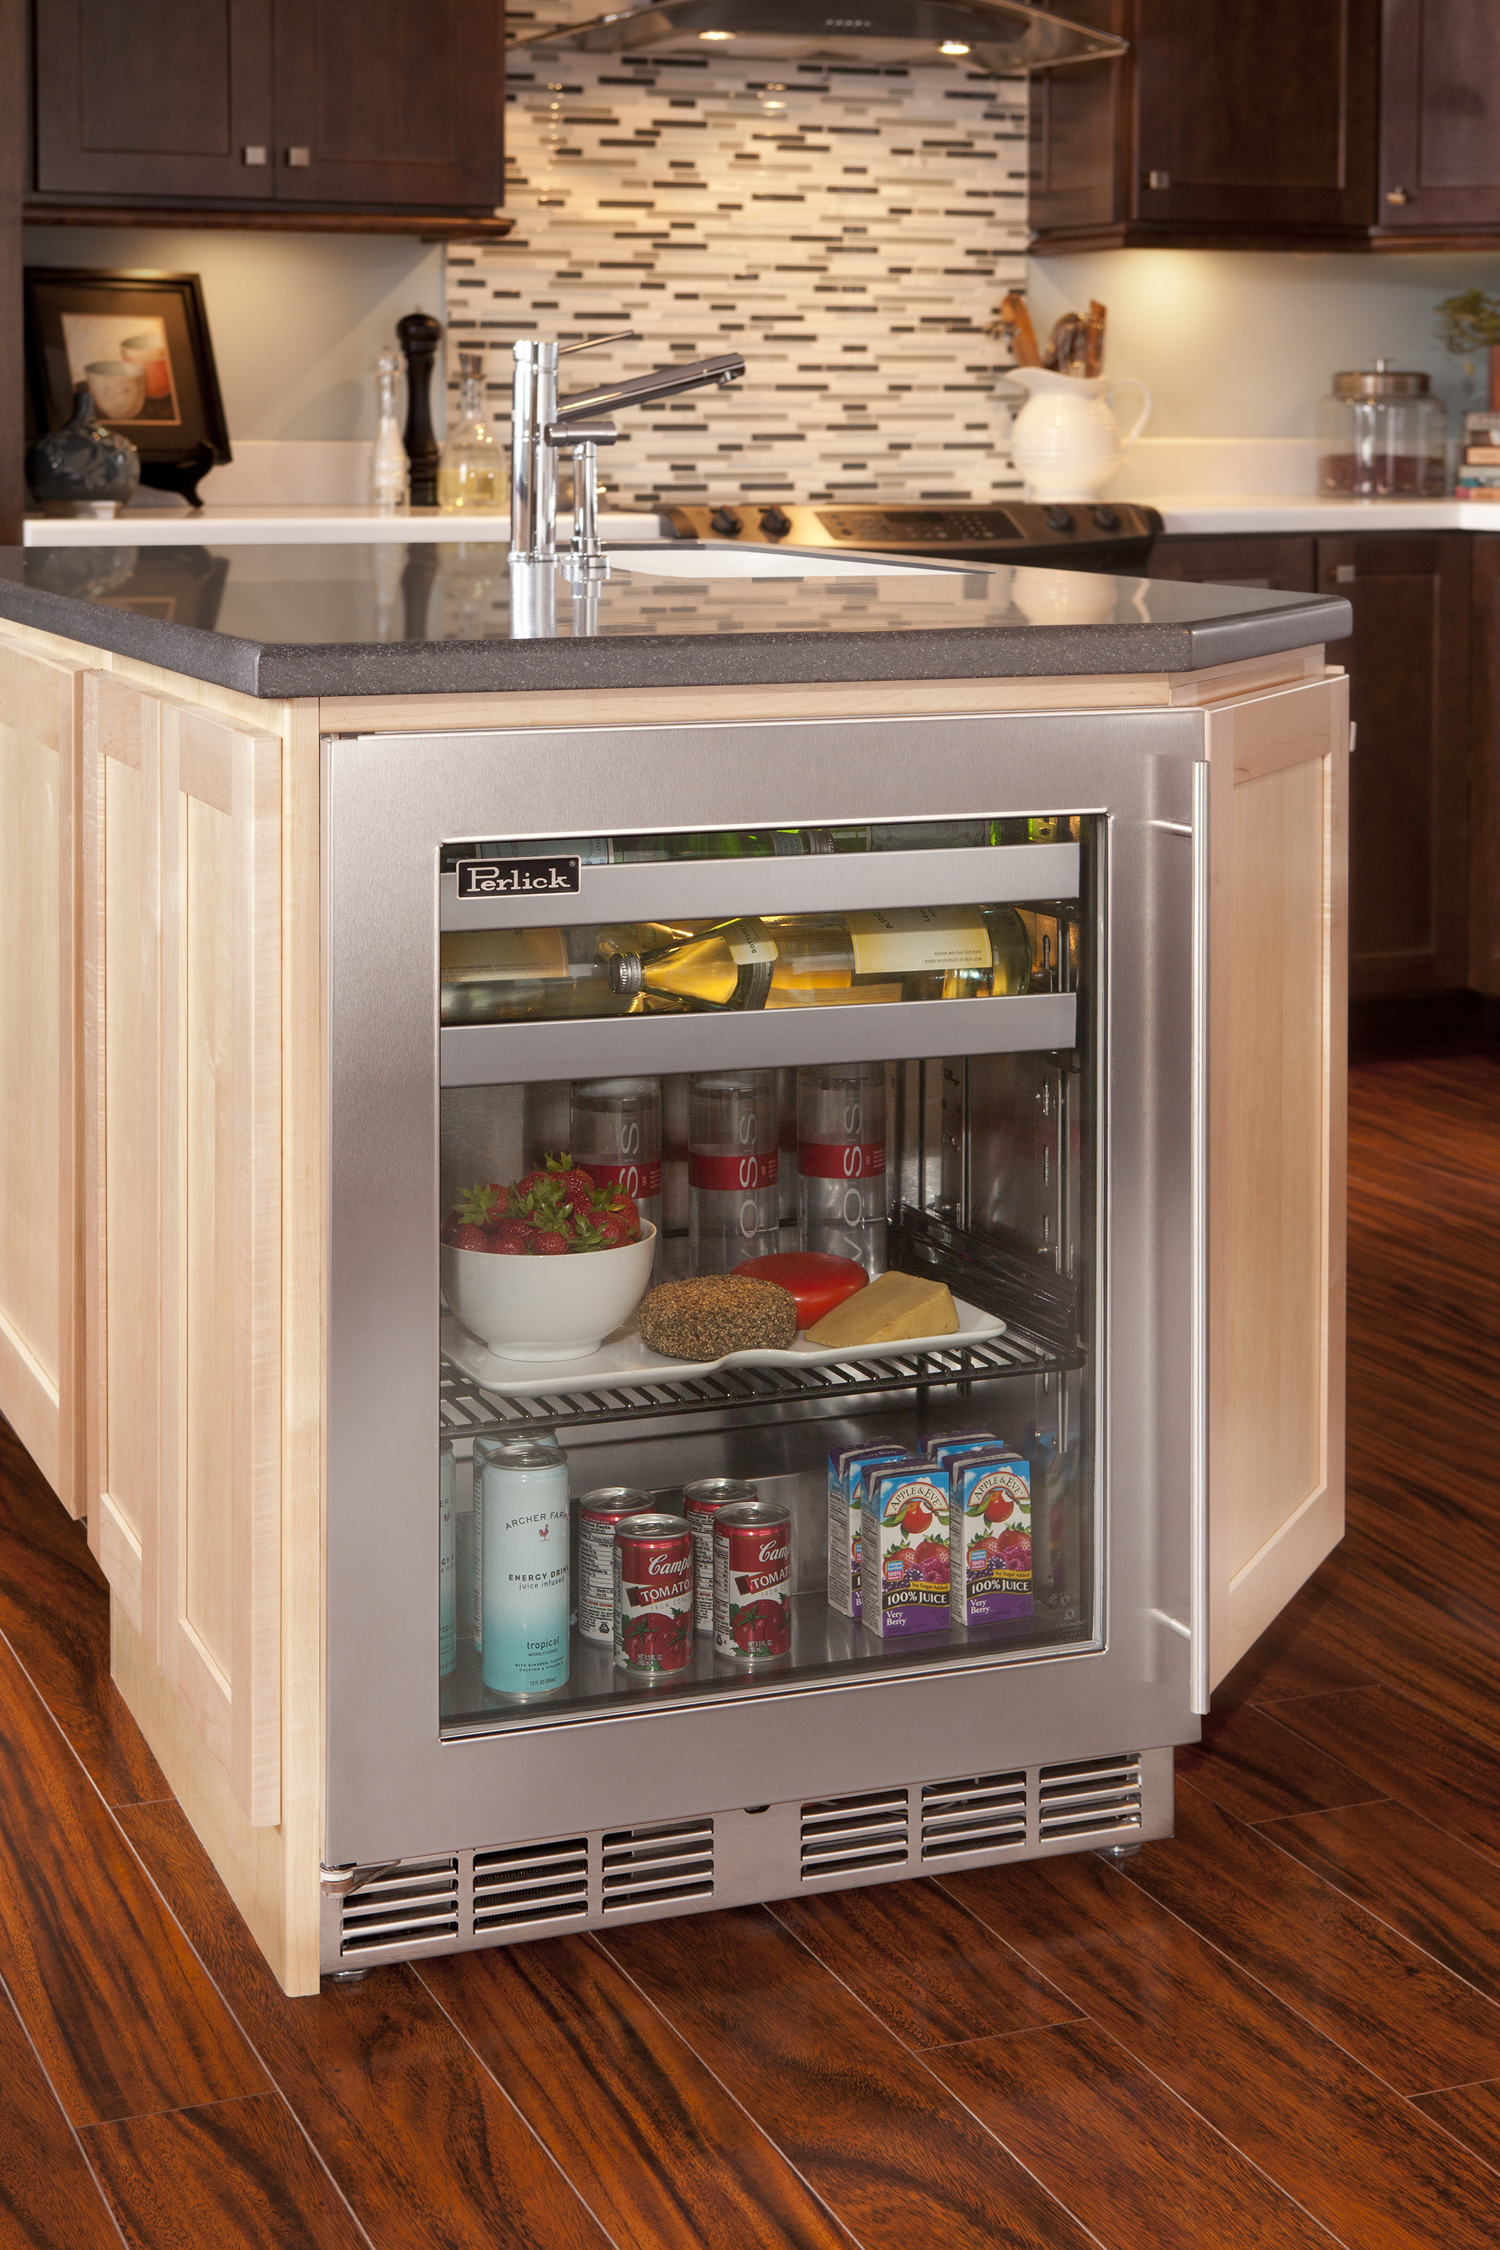 Perlick Corporation S Shallow Depth Series Of Undercounter